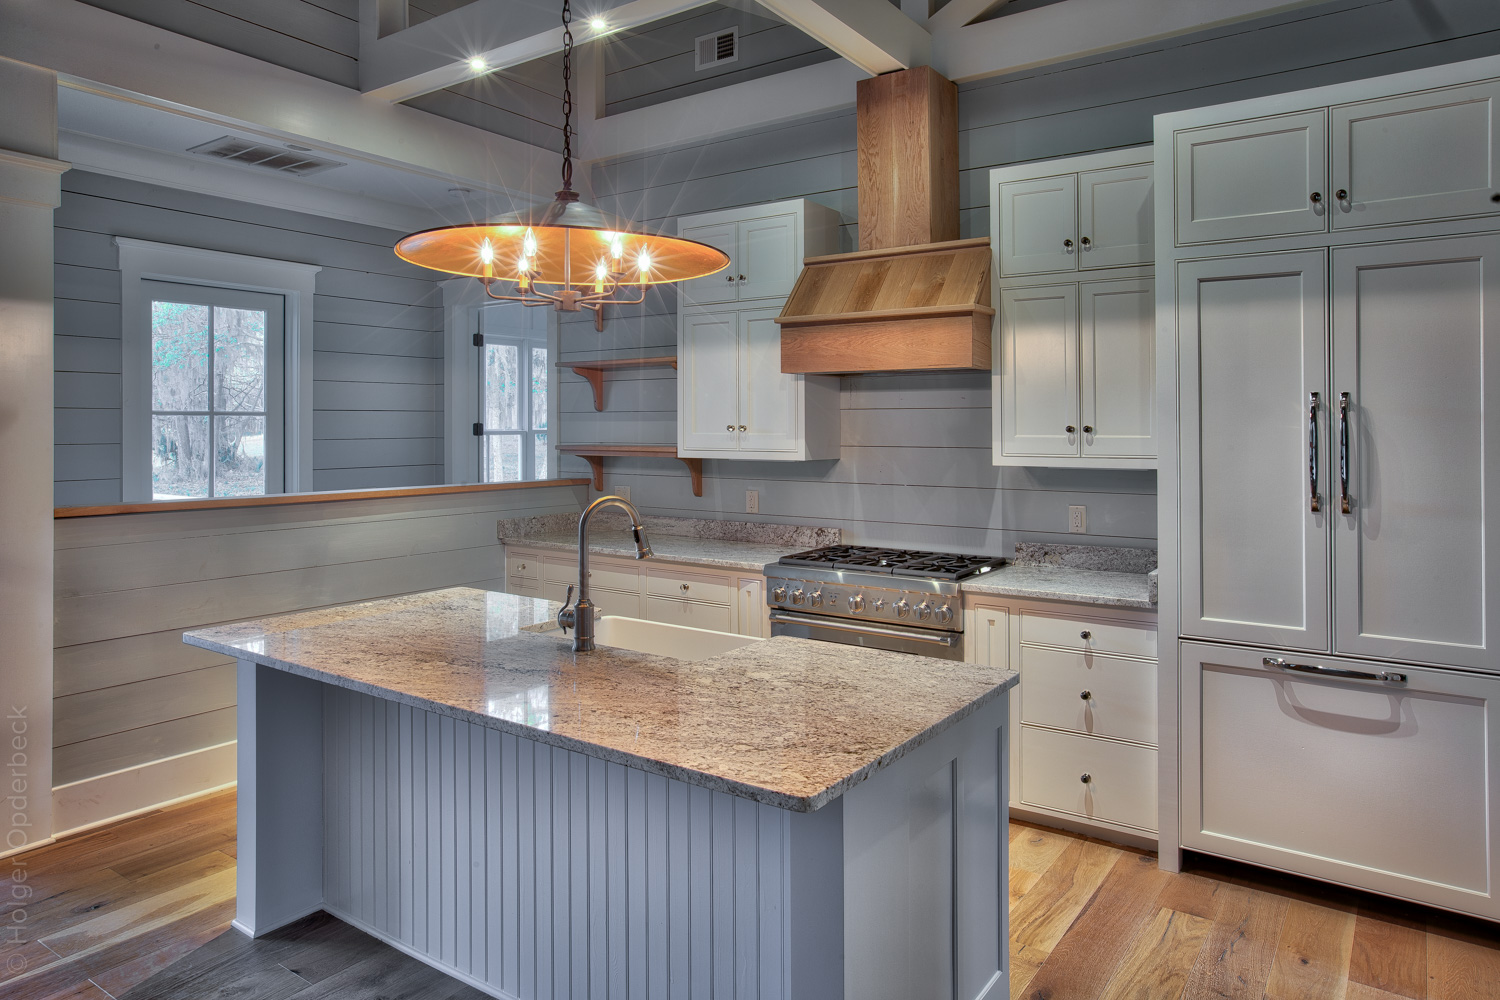 013 kitchen-back.jpg